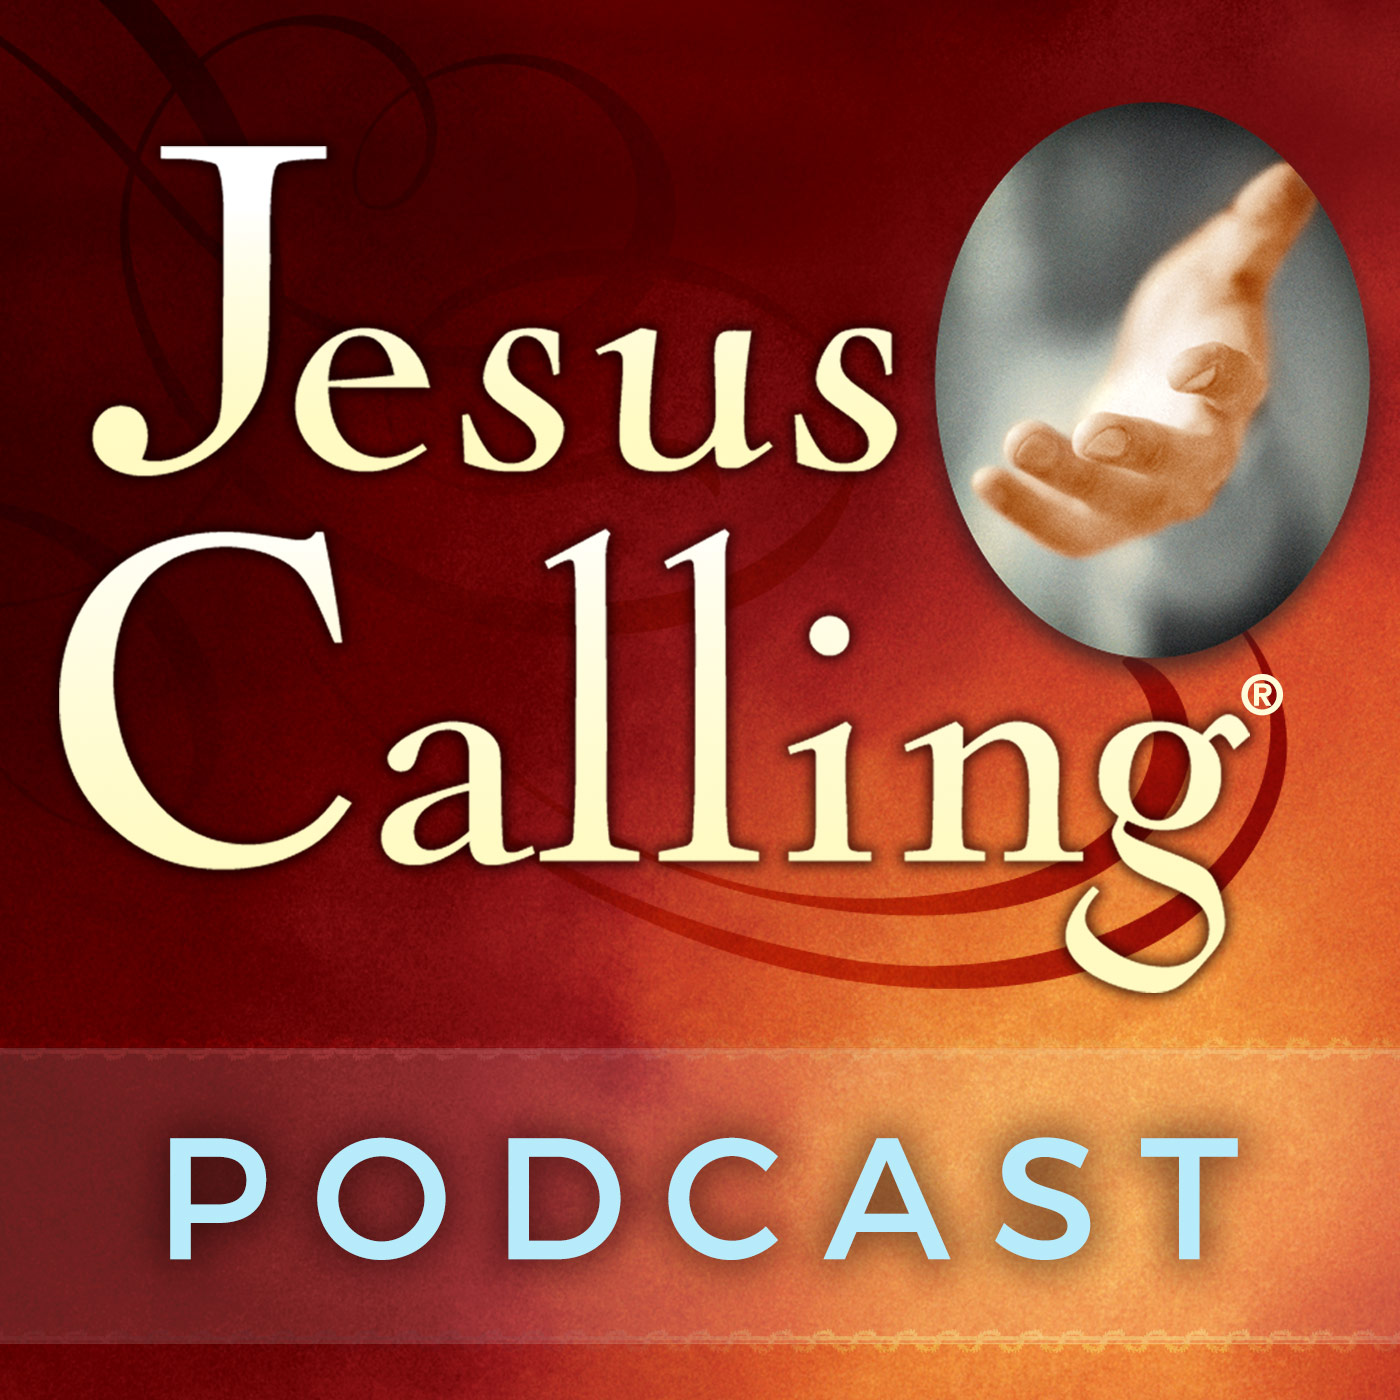 Jesus Calling: Stories of Faith Podcast - Listen, Reviews, Charts -  Chartable